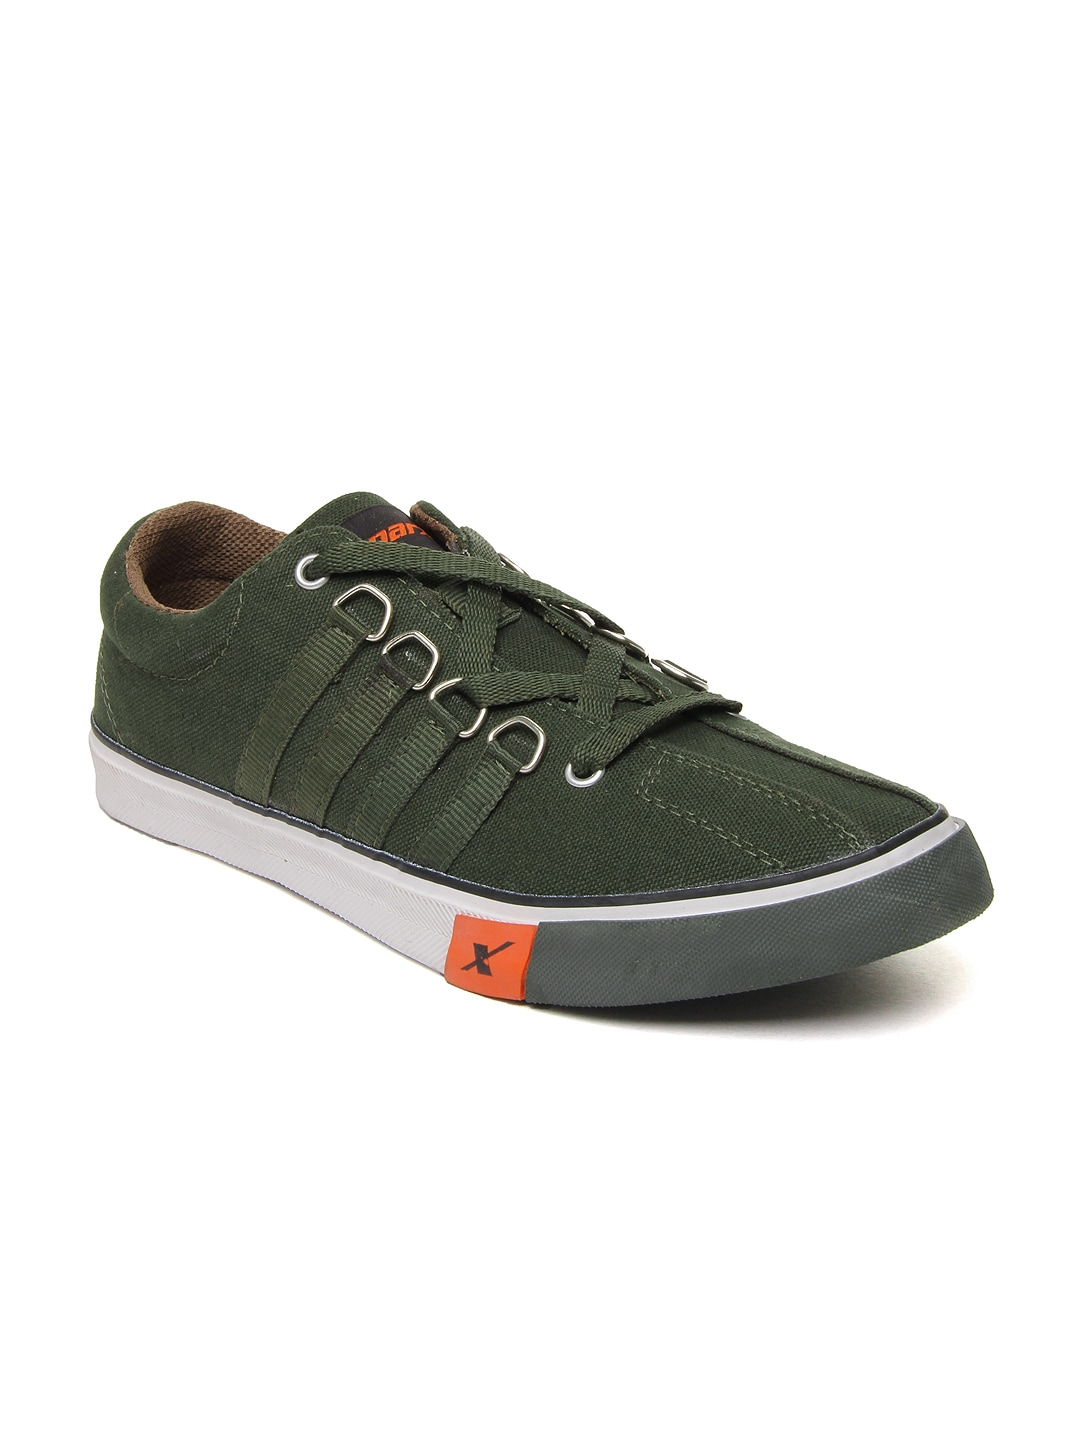 buy sparx green casual shoes 632 footwear for